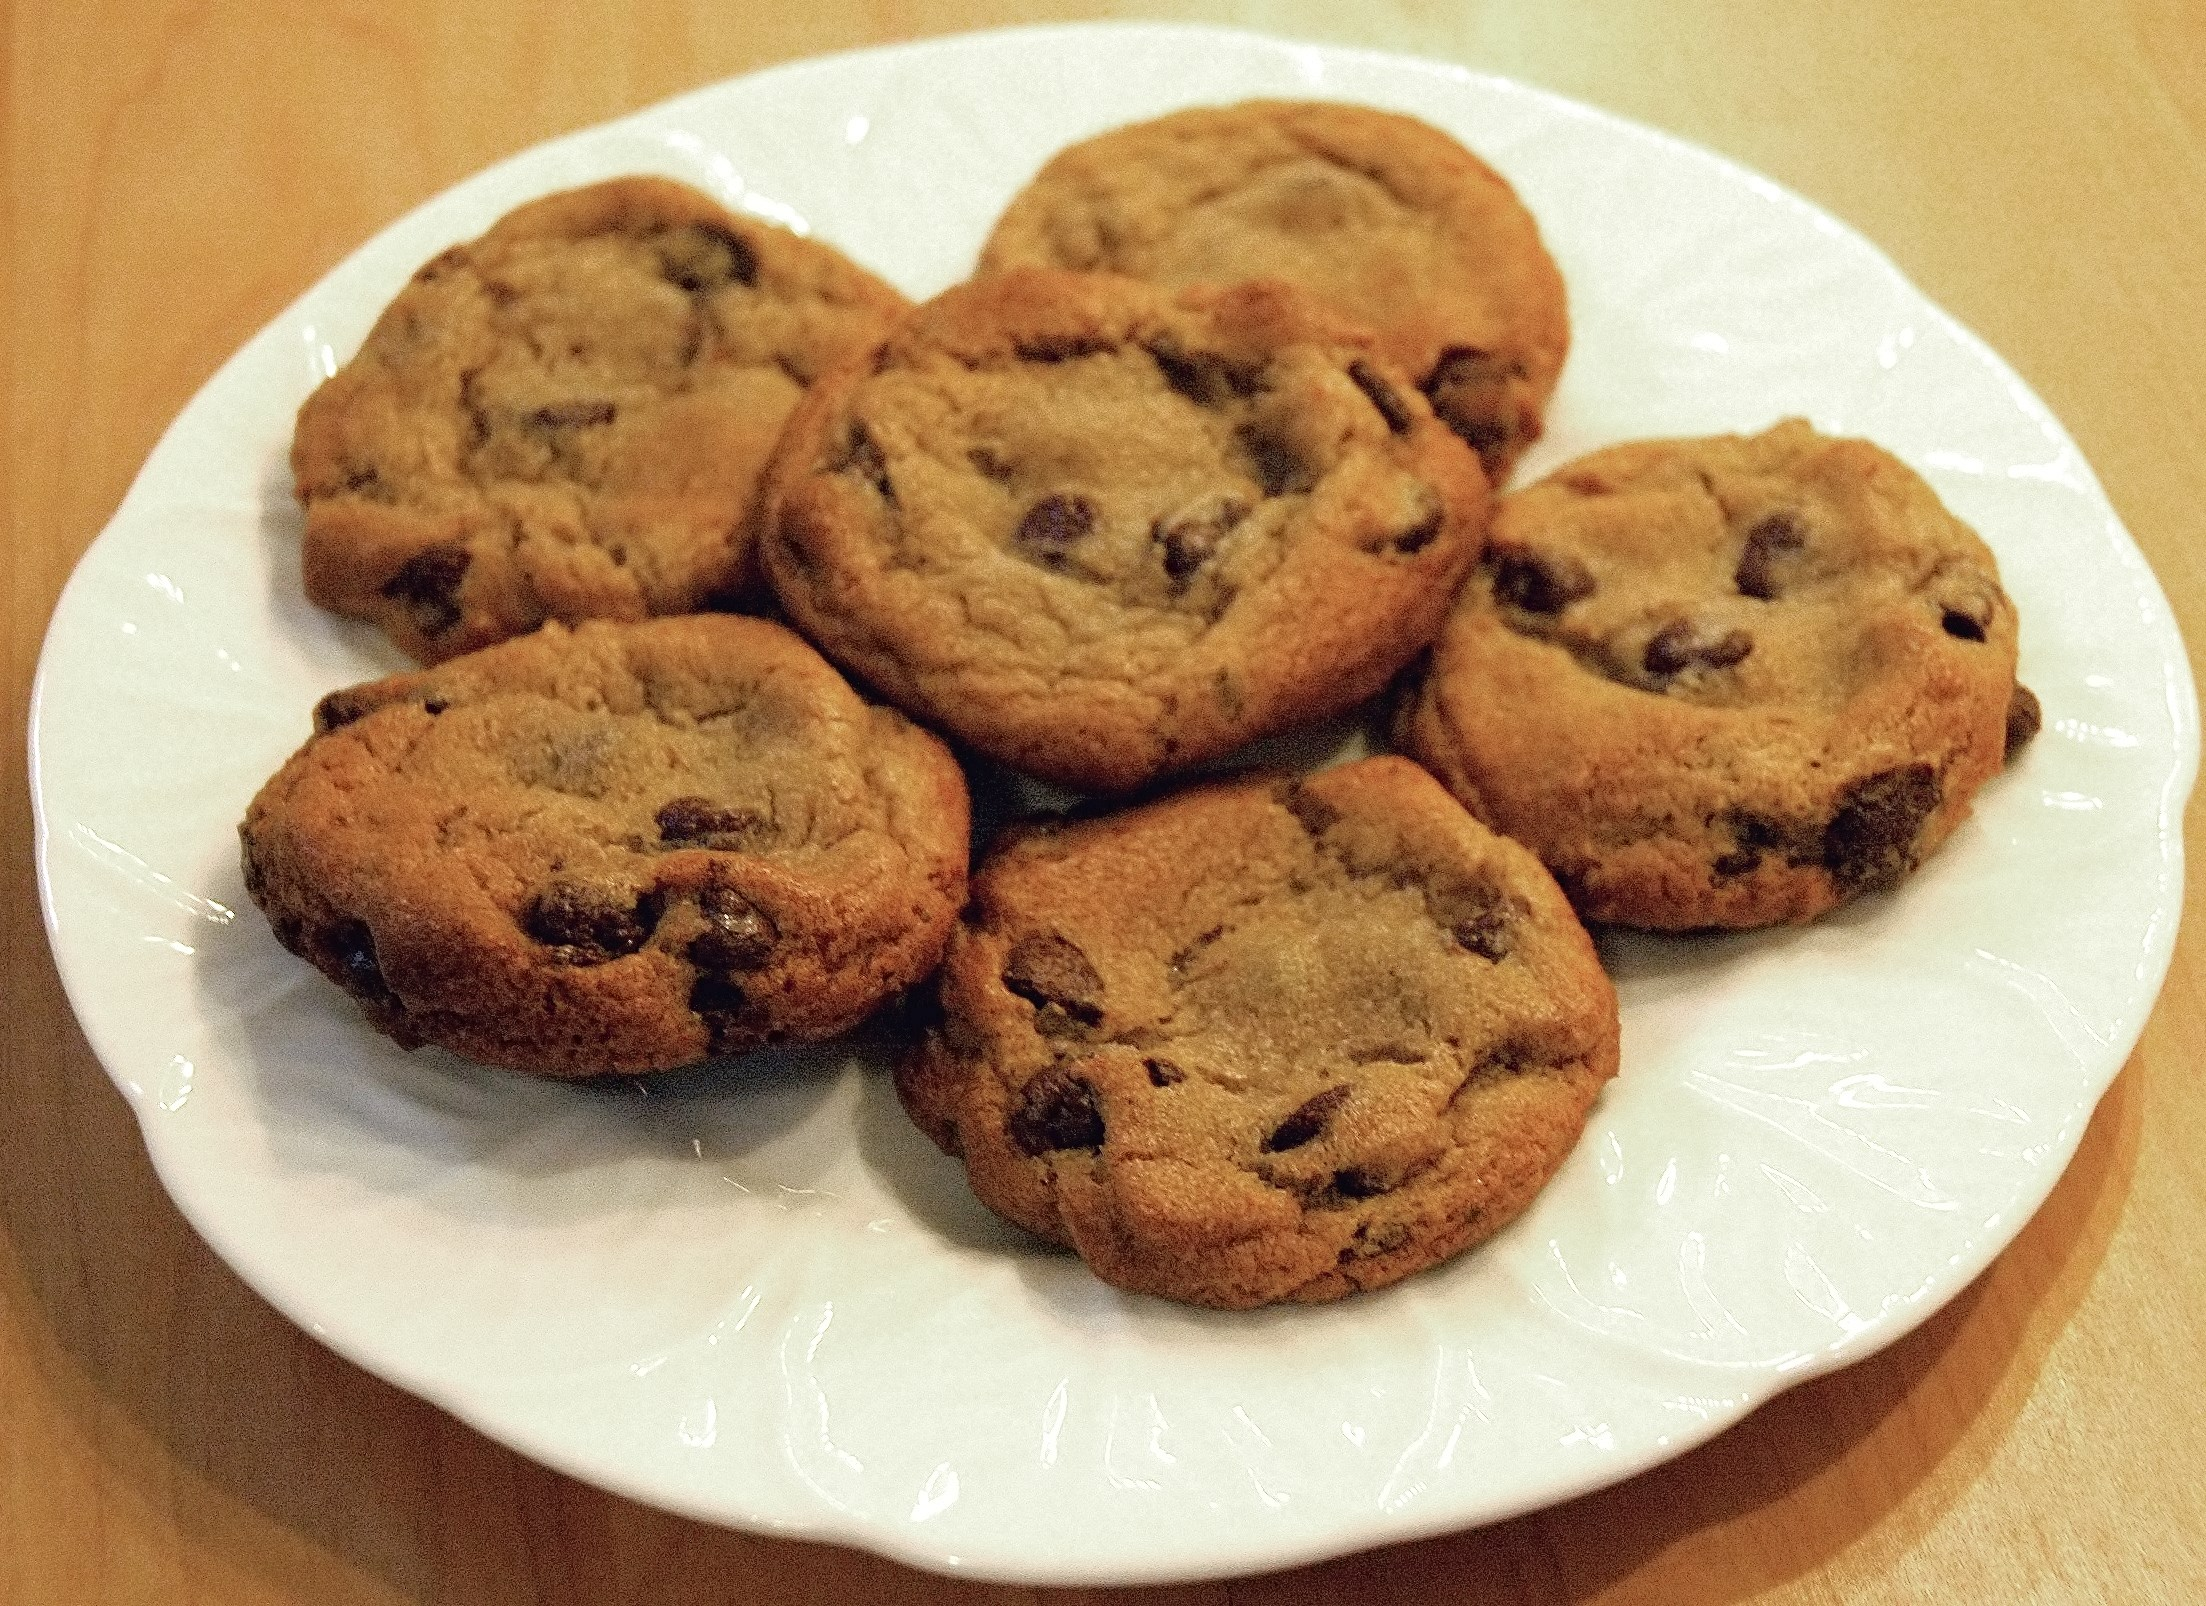 https://i0.wp.com/upload.wikimedia.org/wikipedia/commons/5/50/Chocolate_chip_cookies.jpg